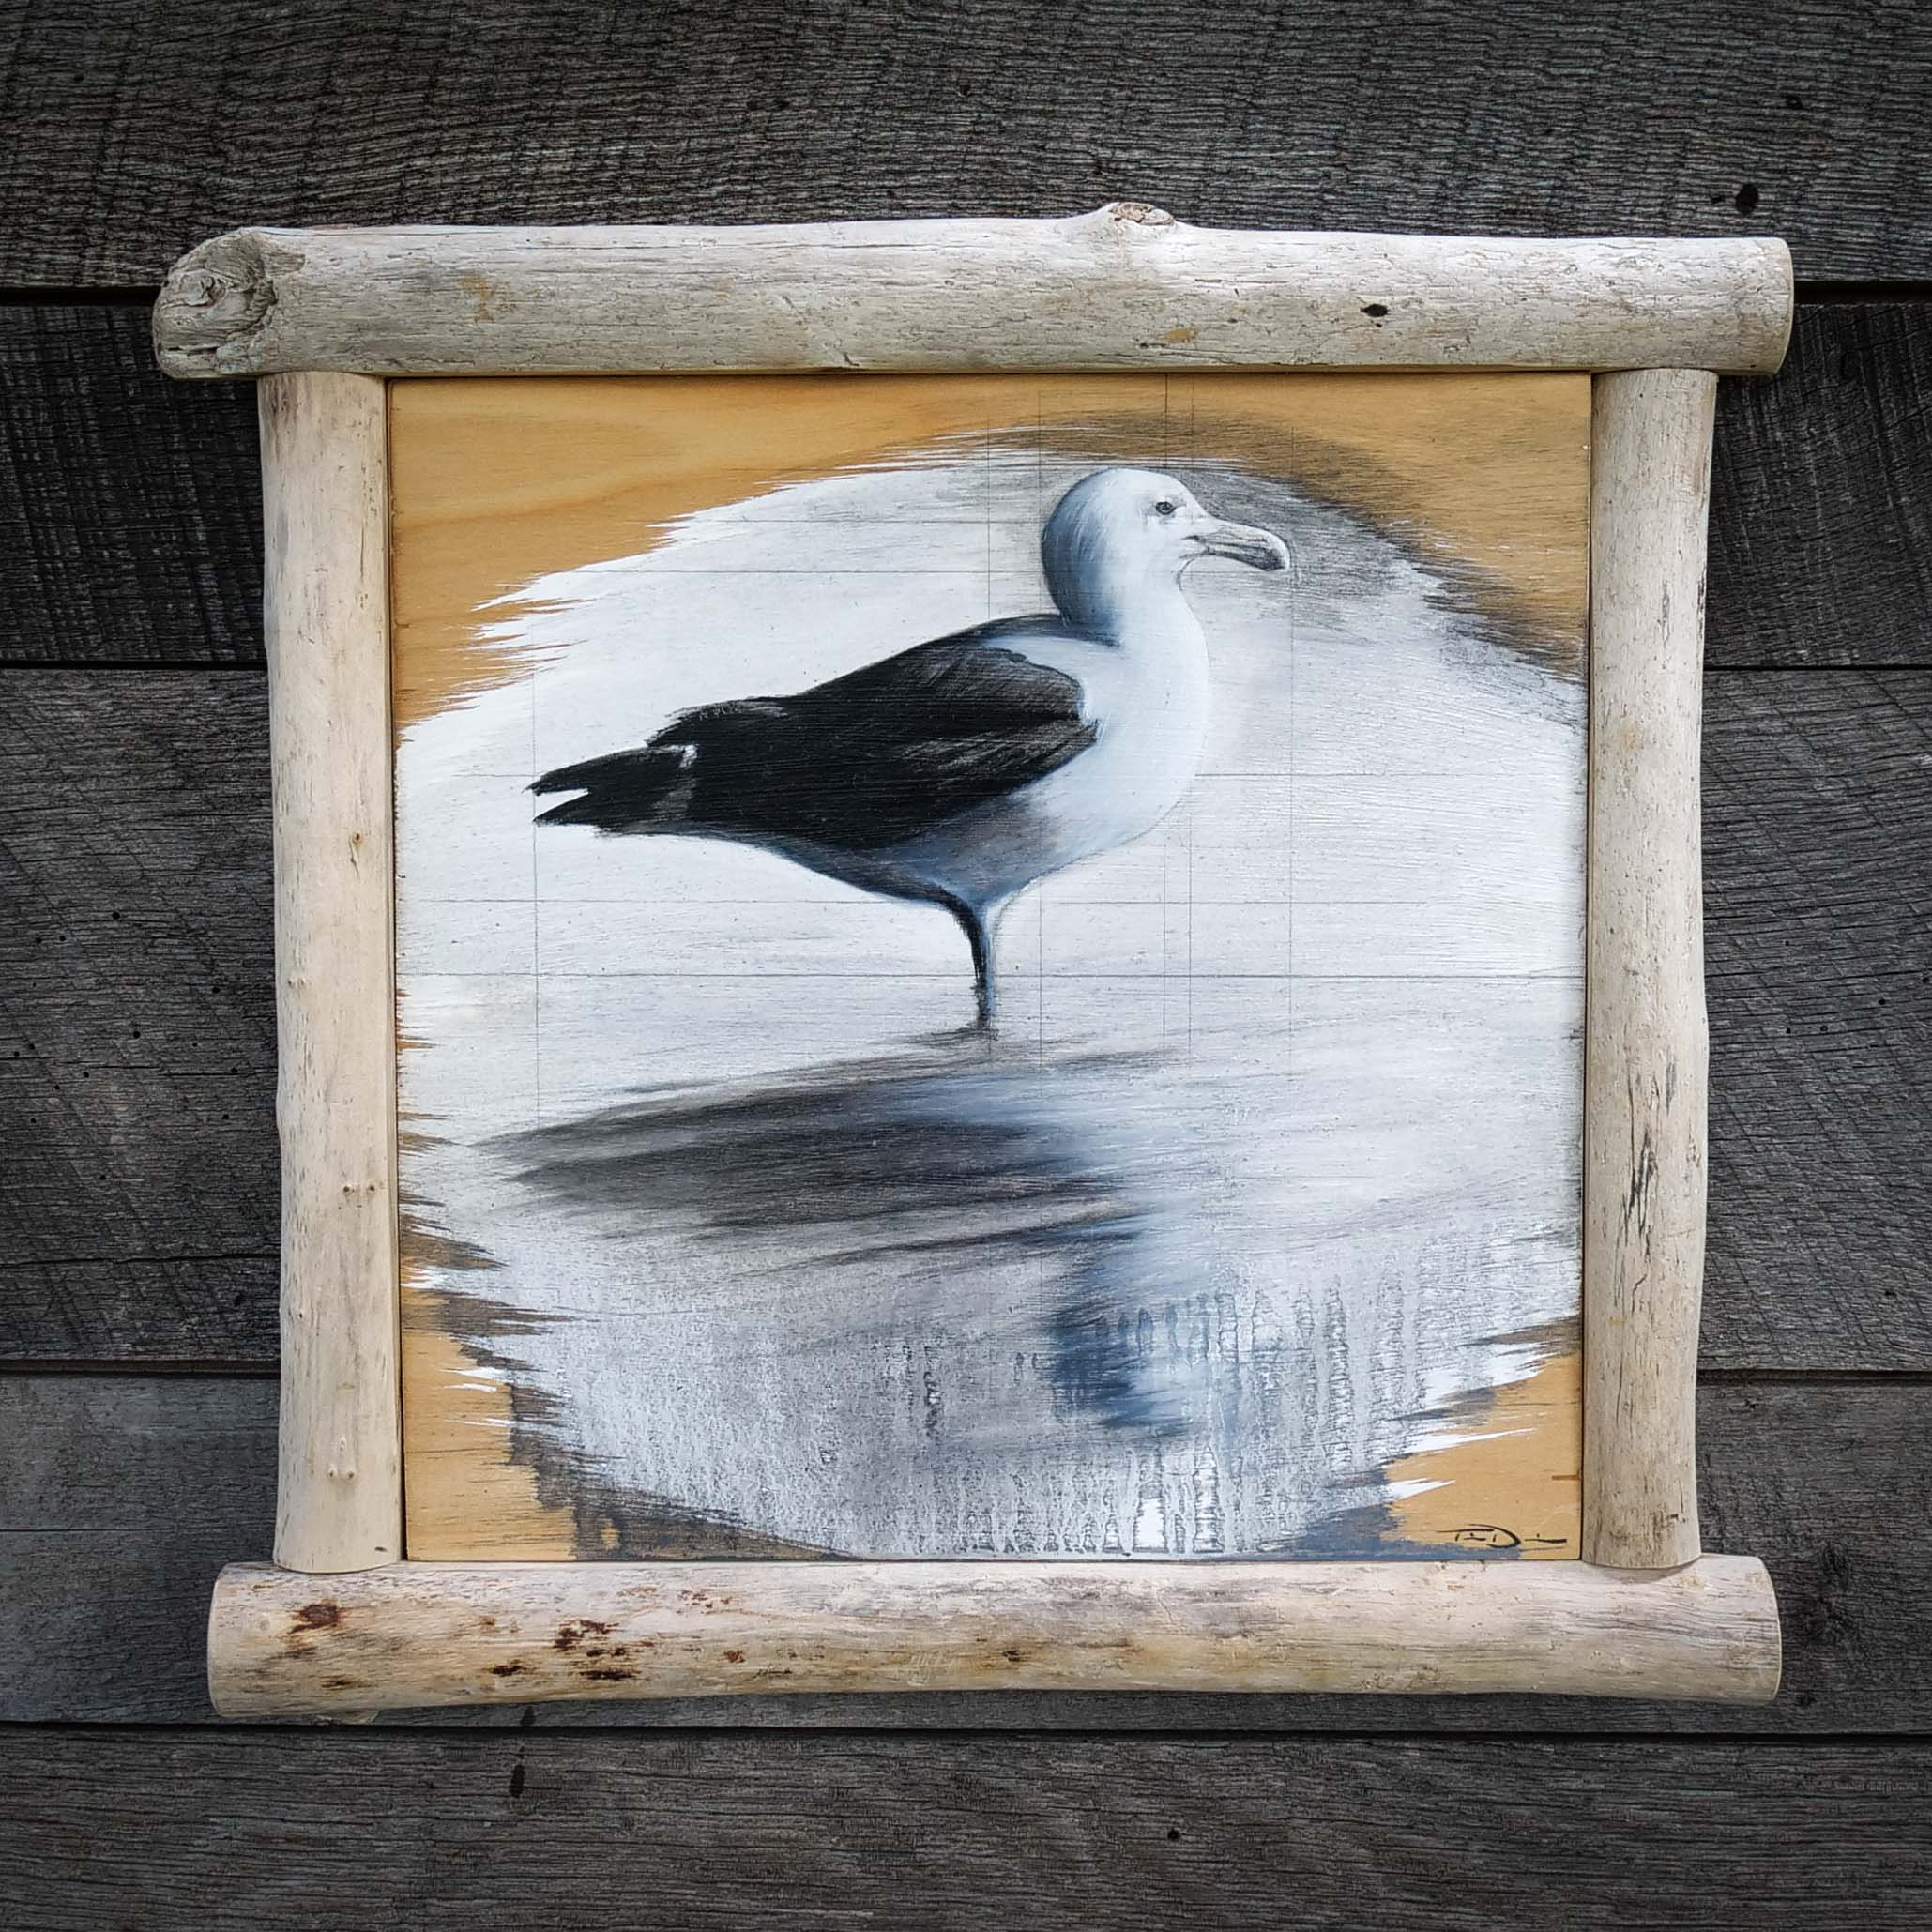 Gull Reflection - Original oil painting by wildlife artist Timothy Davison of the Davison Art Company featuring a gull standing in water with its reflection below. This black and white painting appears to come off the surface, revealing the wood grain below. Framed with a custom driftwood frame. © COPYRIGHT TIMOTHY DAVISON